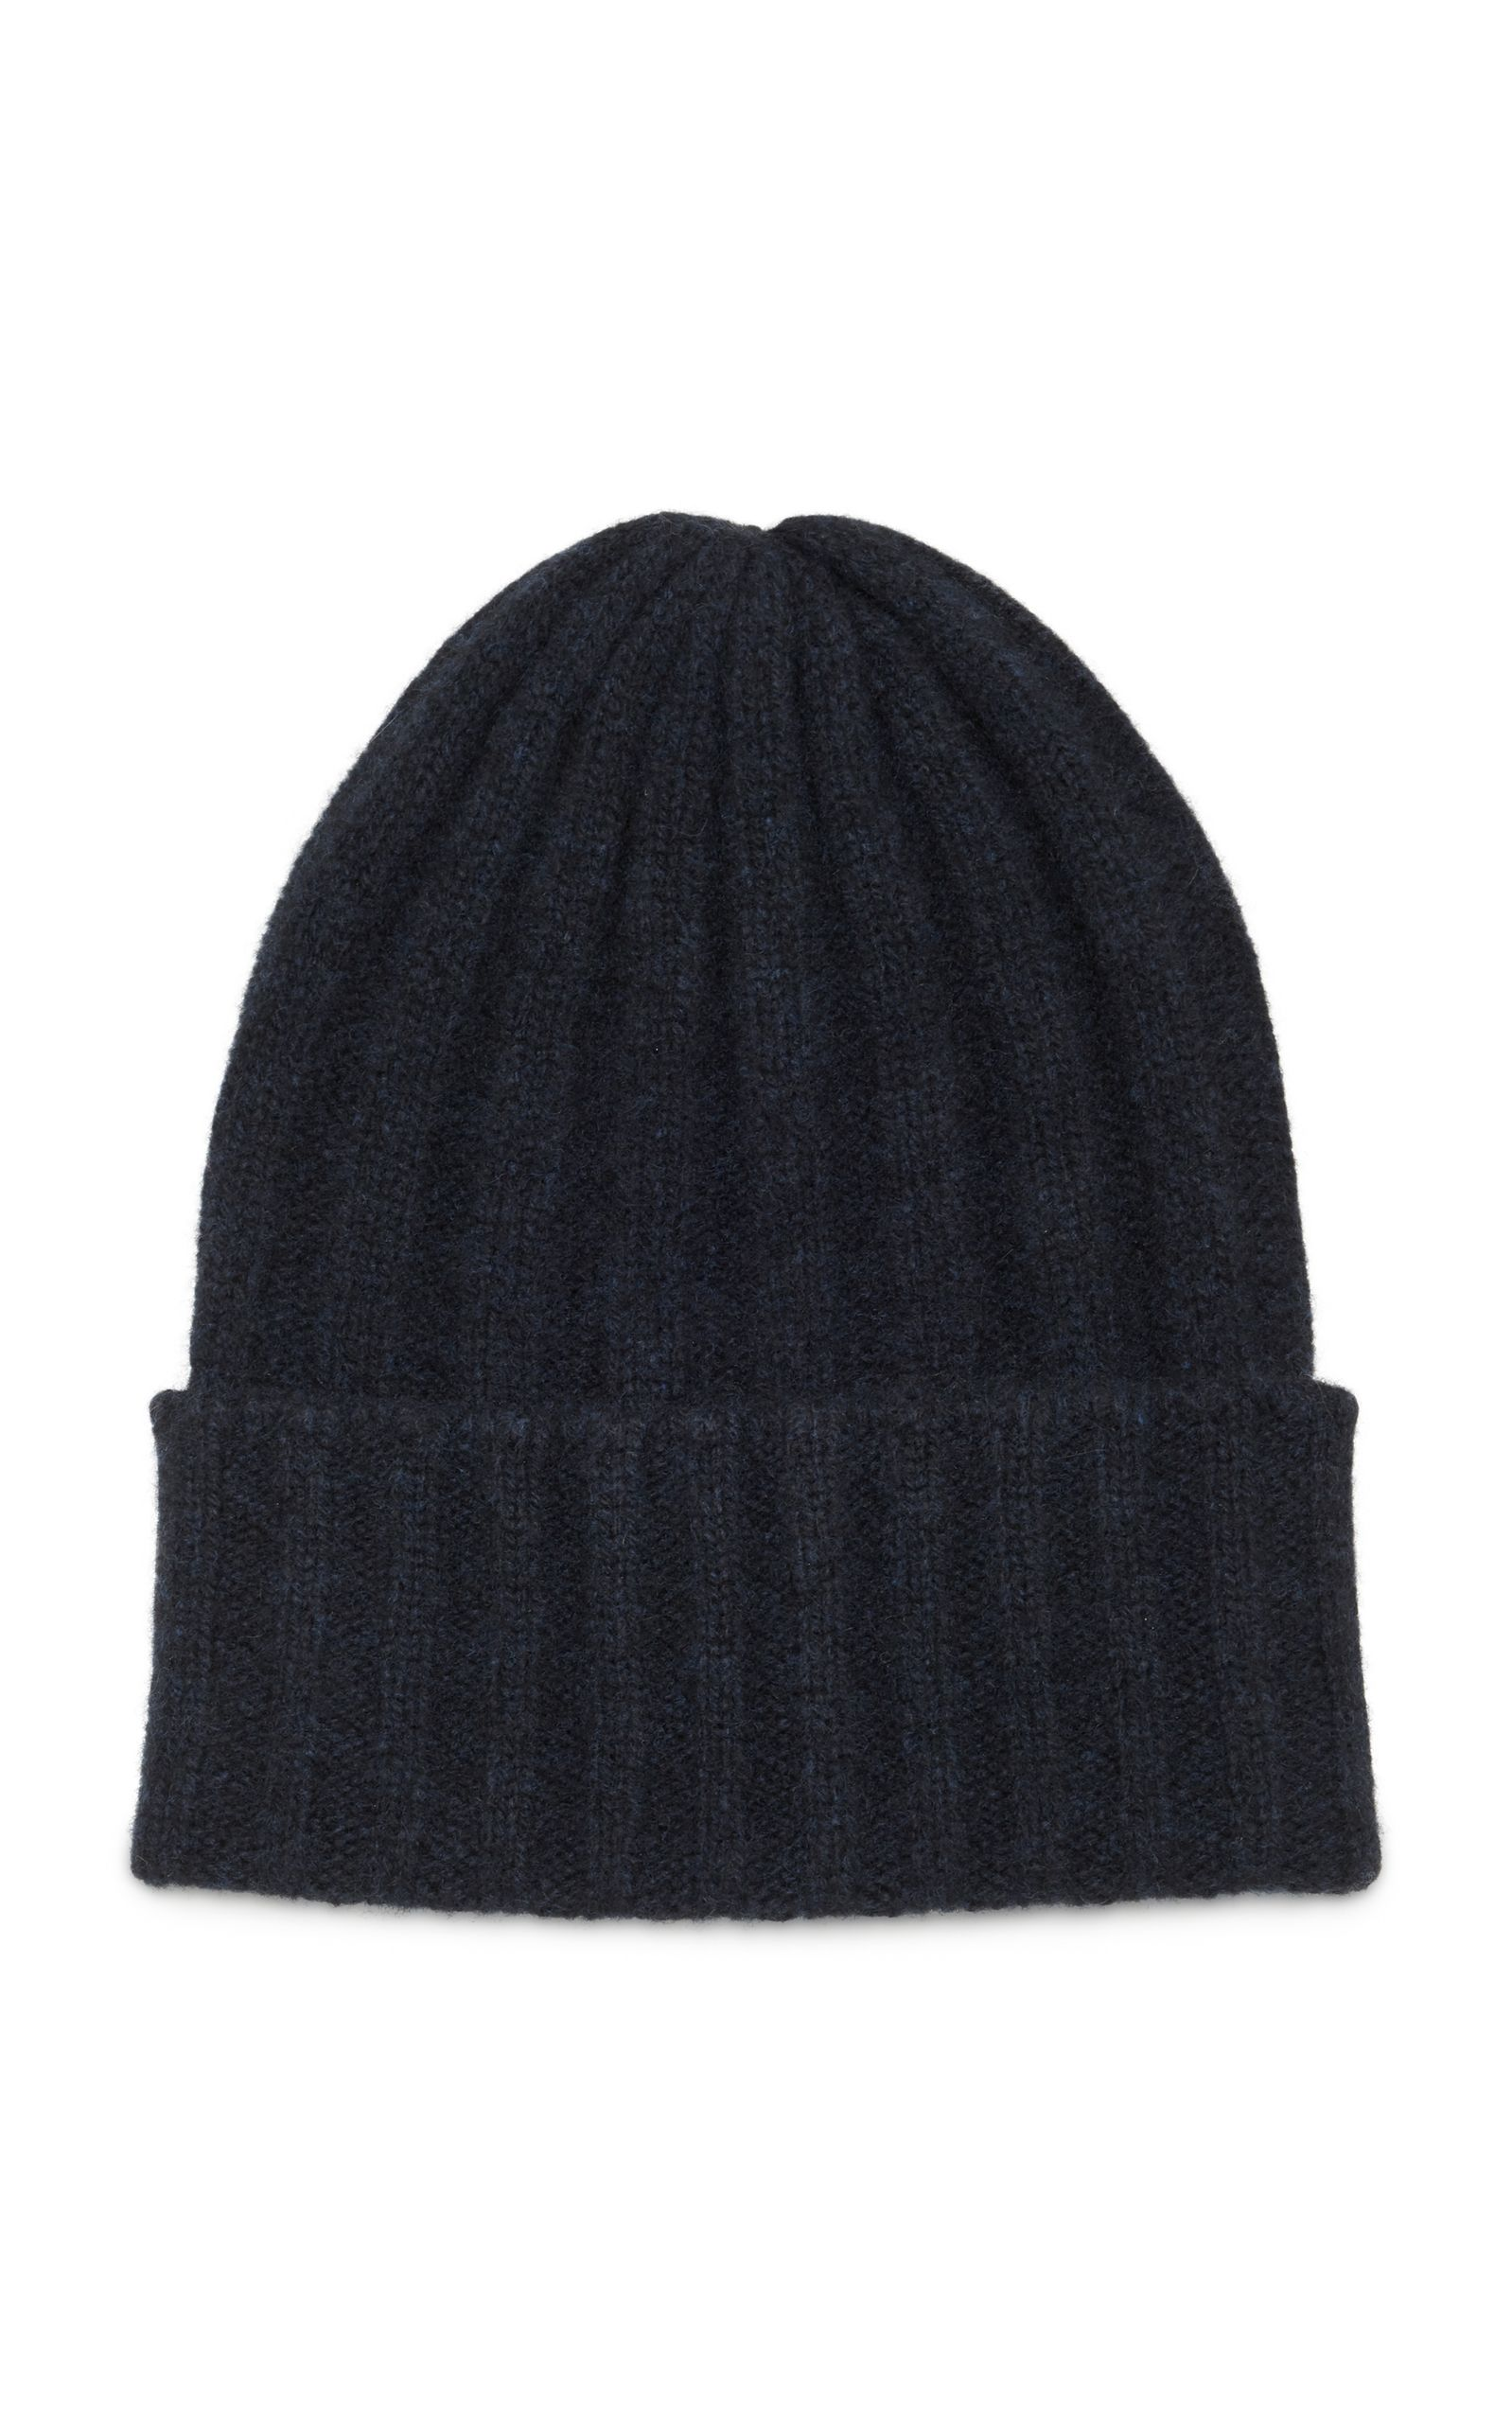 Bunny Echo Striped Cashmere Beanie The Elder Statesman 2no0EvA